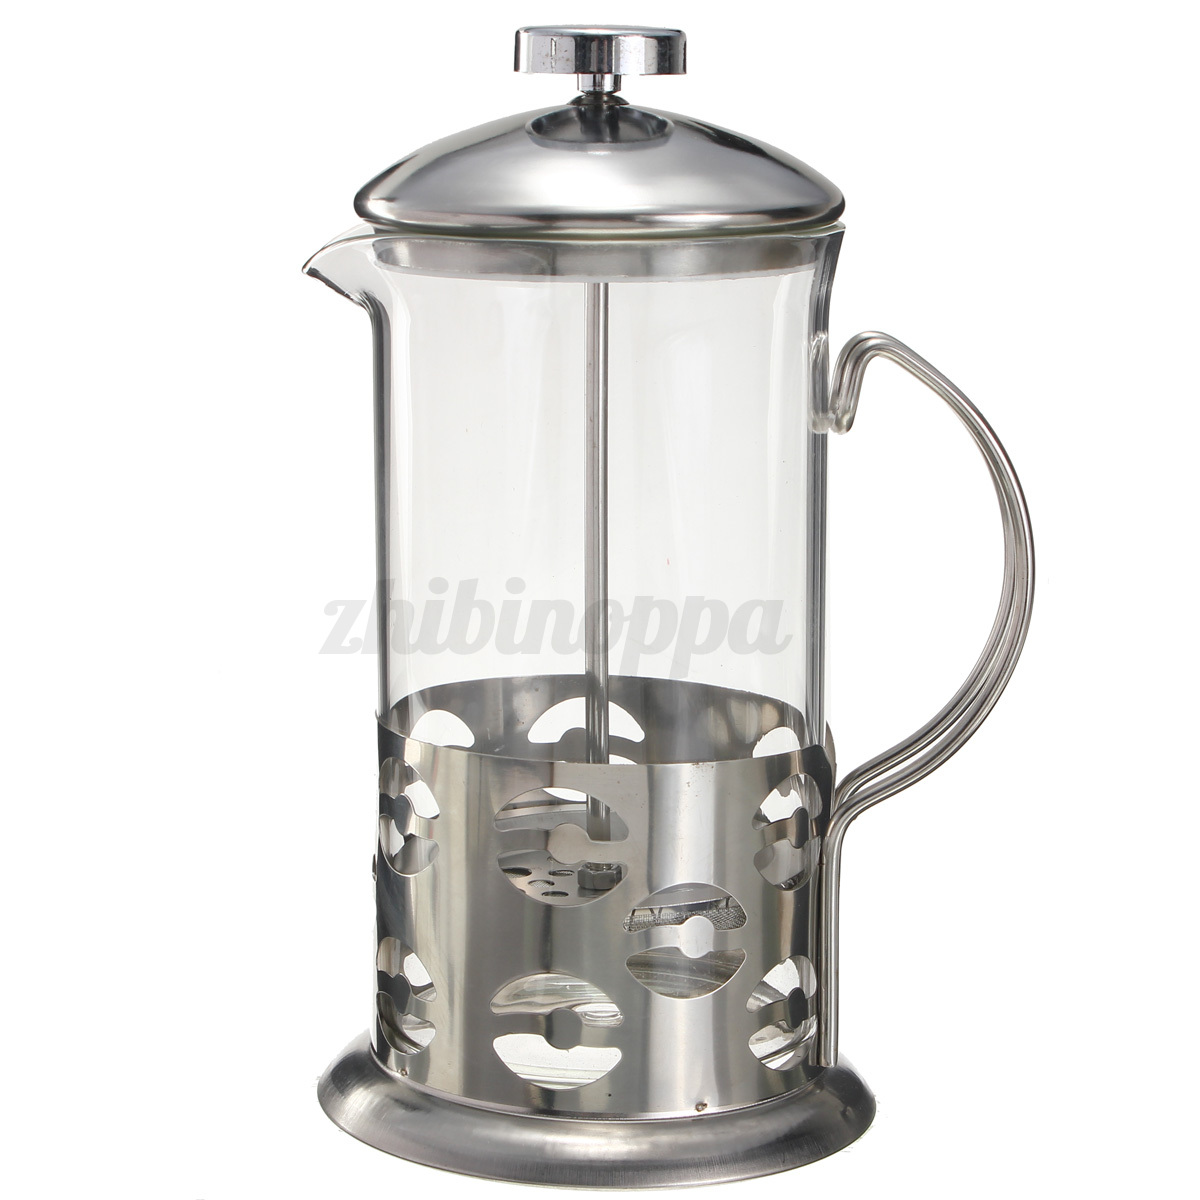 stainless steel glass cafetiere french filter coffee tea kettle press plunger ebay. Black Bedroom Furniture Sets. Home Design Ideas